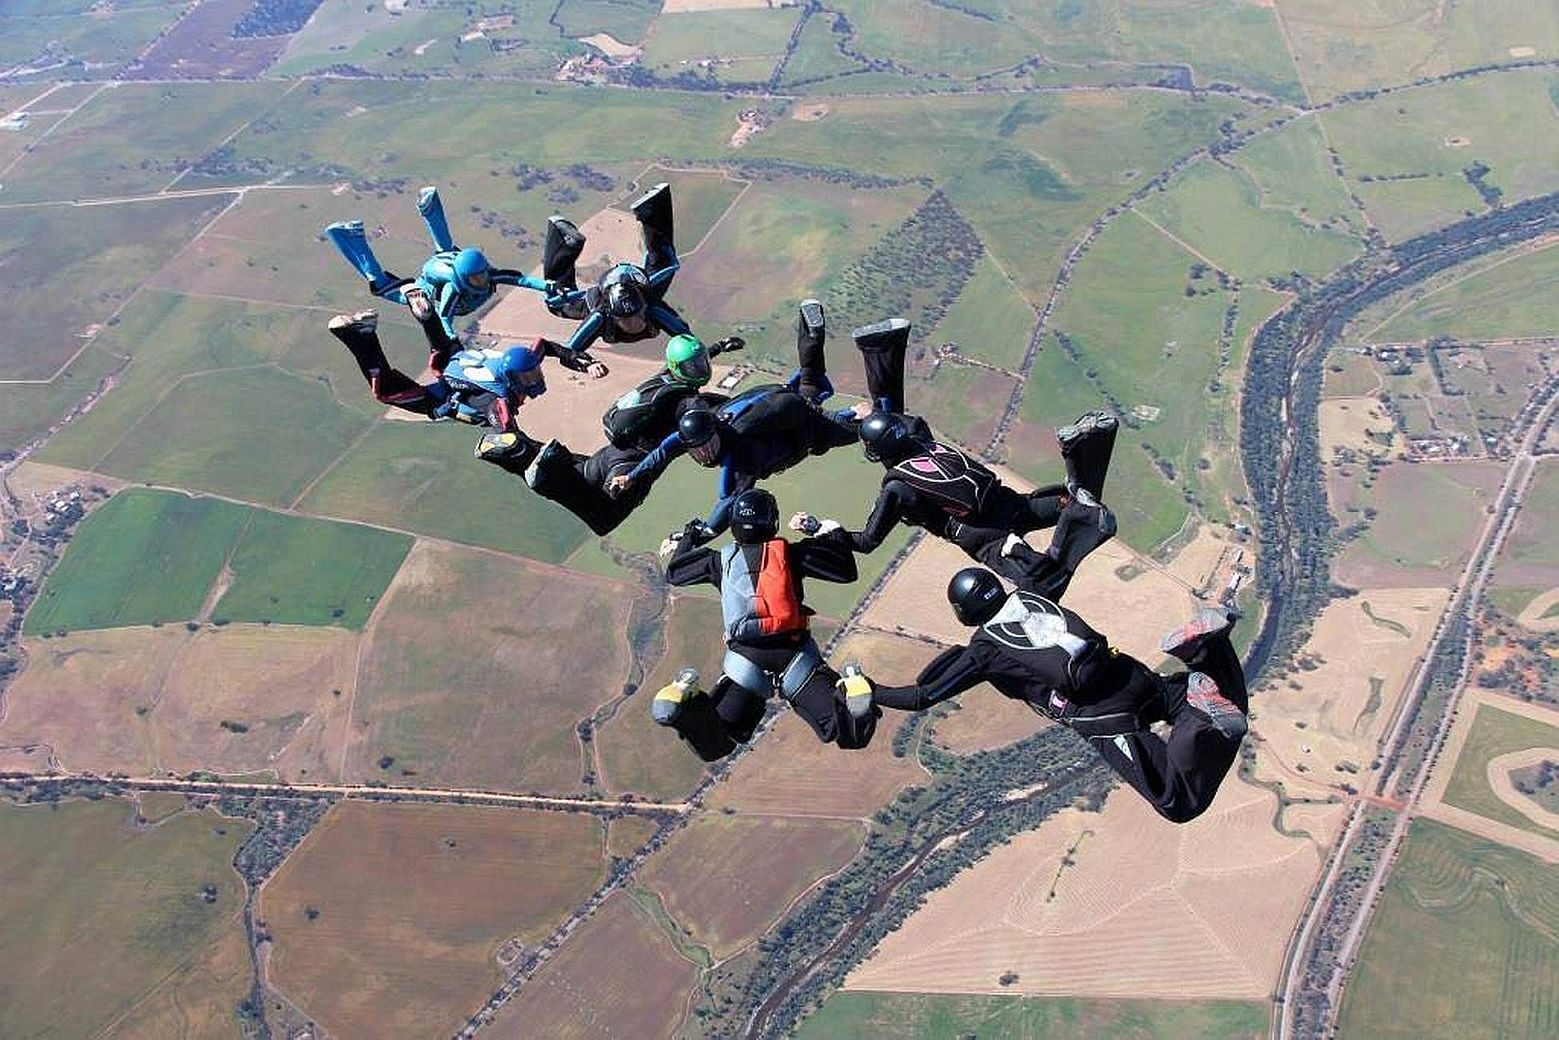 Competitors high above York at the Australian National Skydiving Championships.